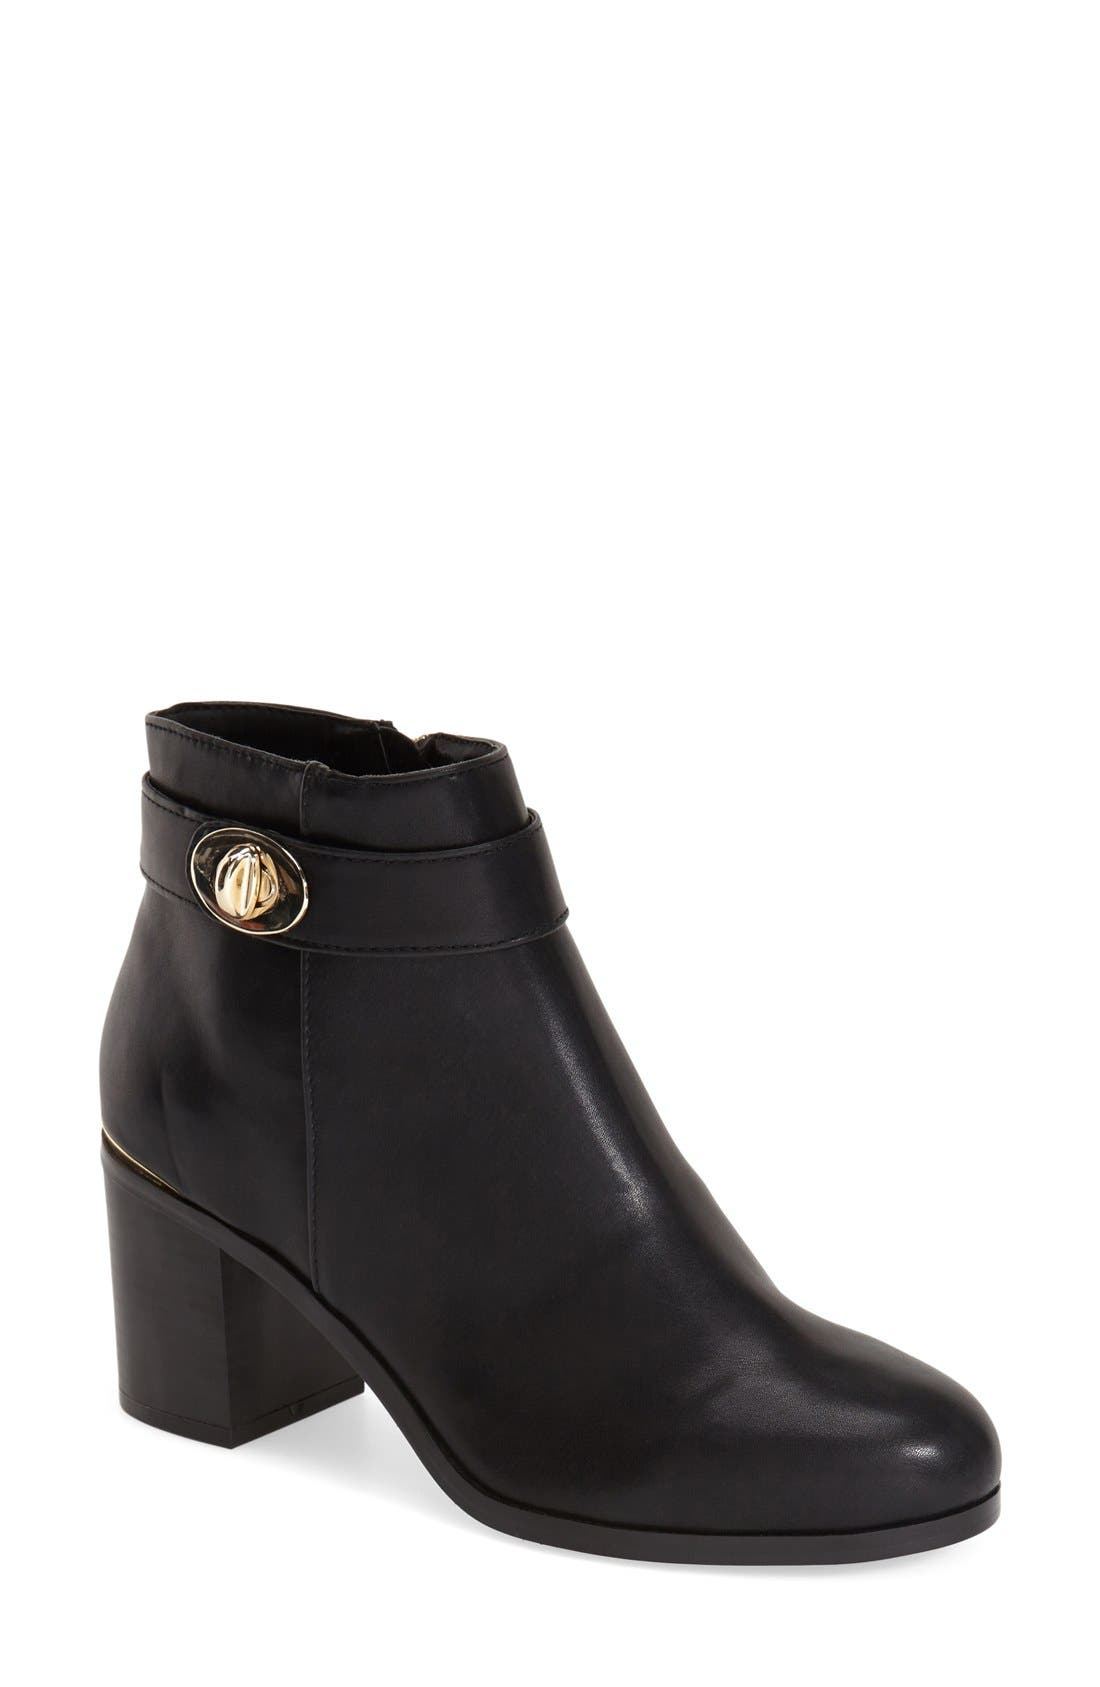 Alternate Image 1 Selected - Topshop'Be Mine' Ankle Boot (Women)